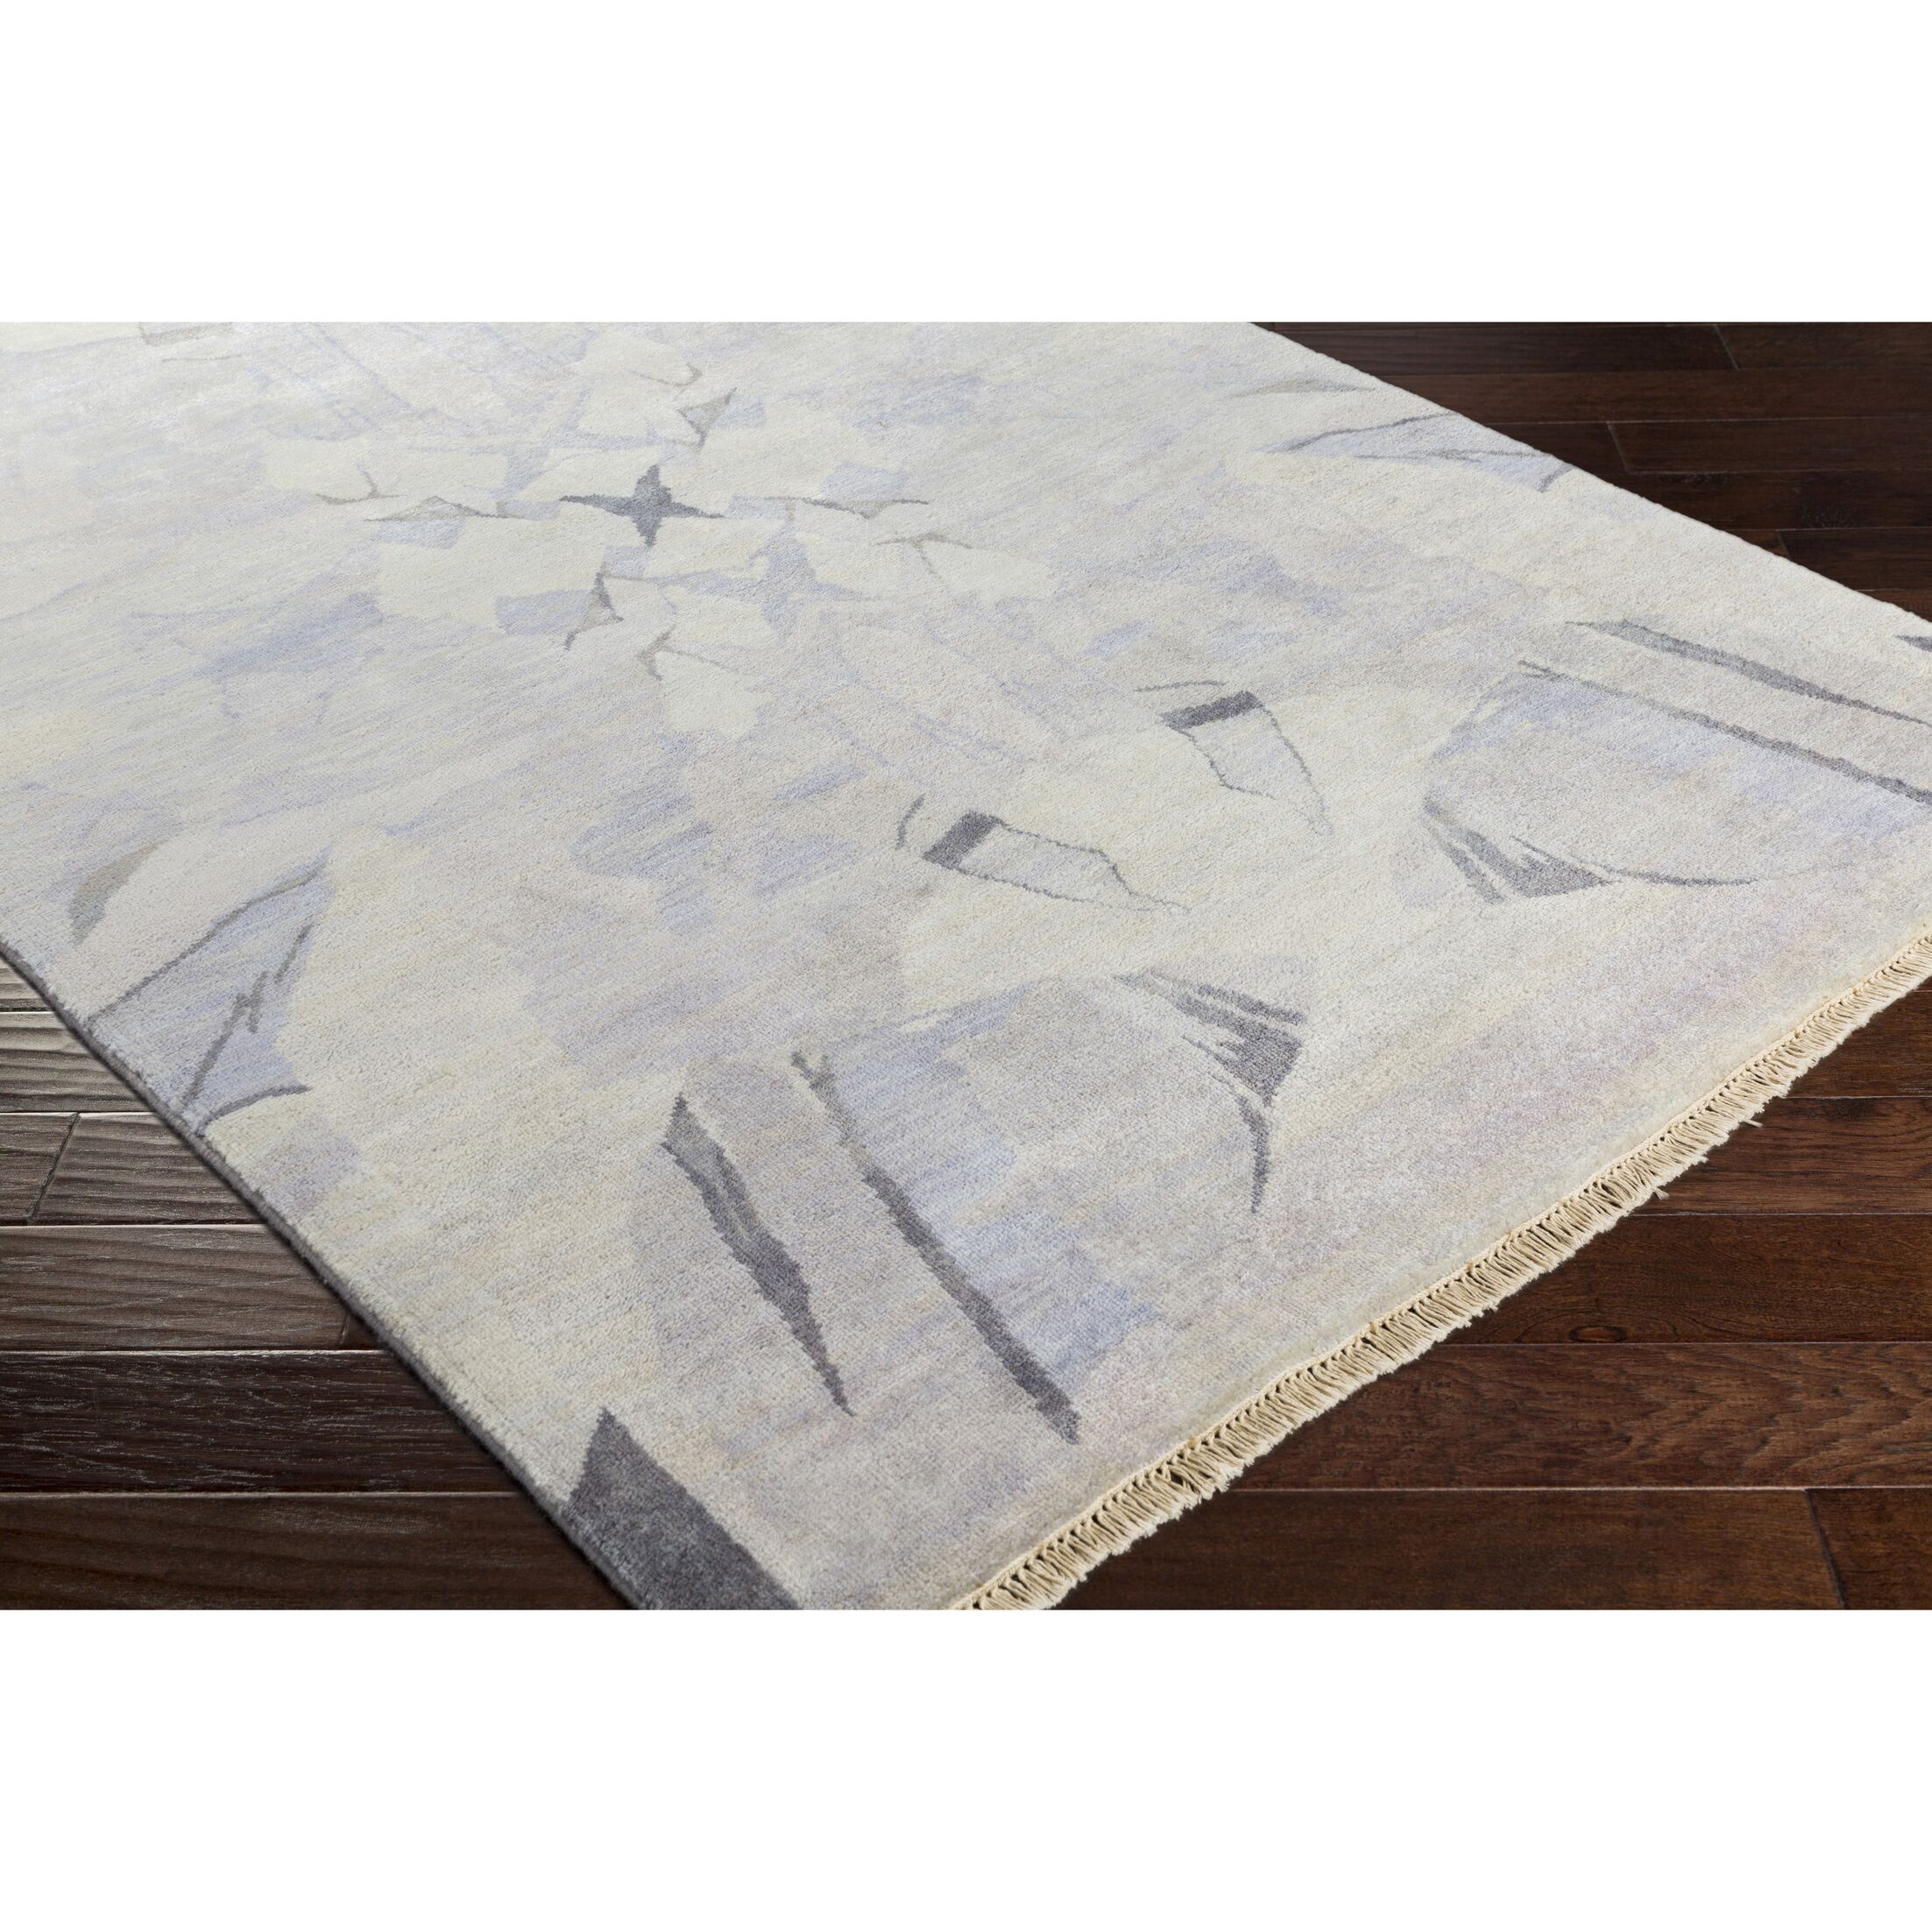 Larache Hand-Knotted Neutral/Brown Area Rug Rug Size: Rectangle 9' x 13'